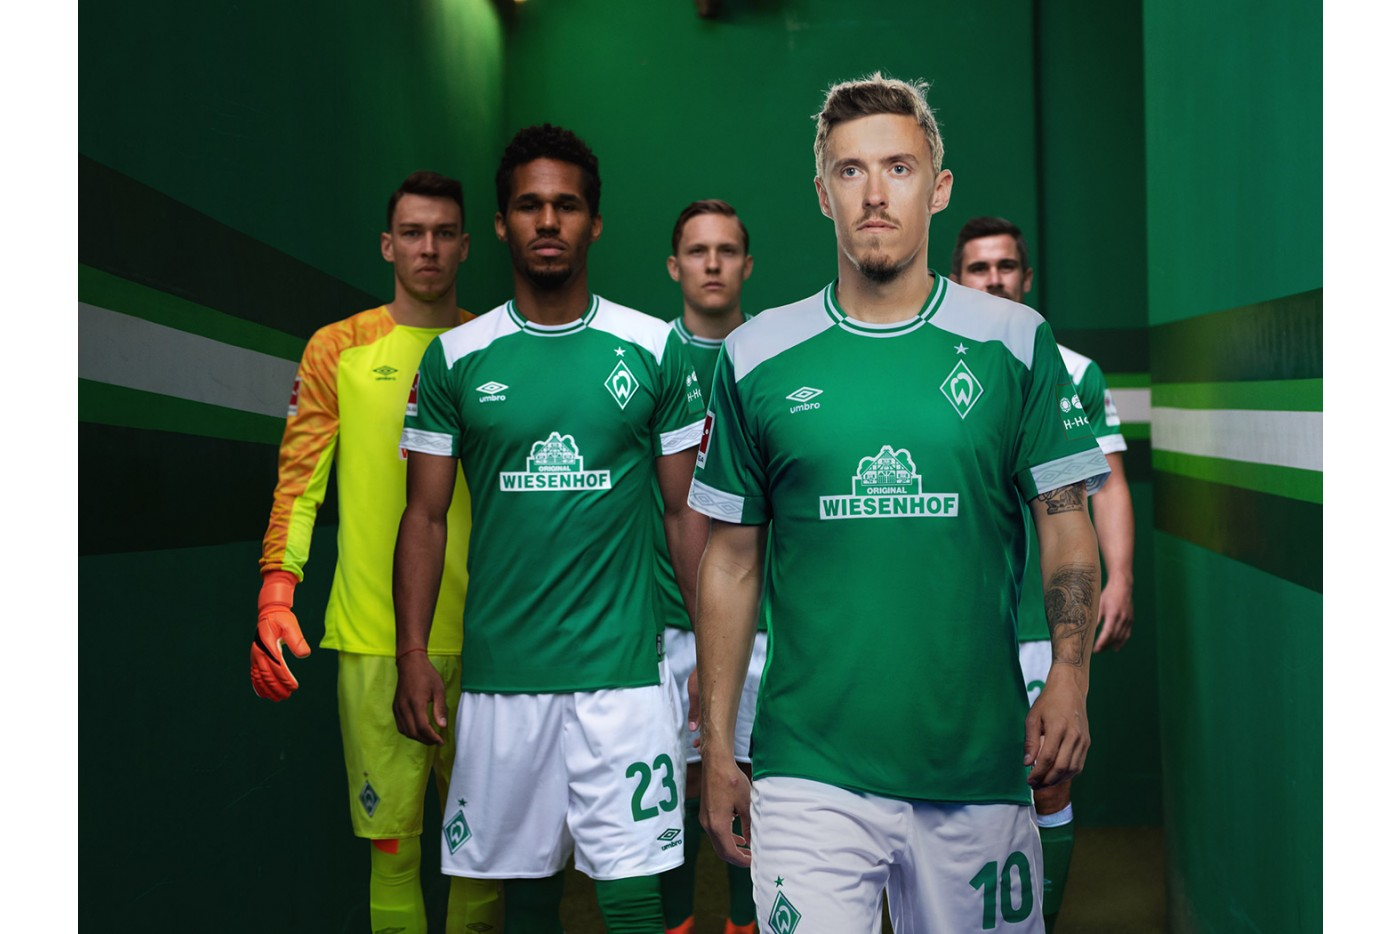 werder bremen 2018 19 umbro home kit 18 19 kits. Black Bedroom Furniture Sets. Home Design Ideas